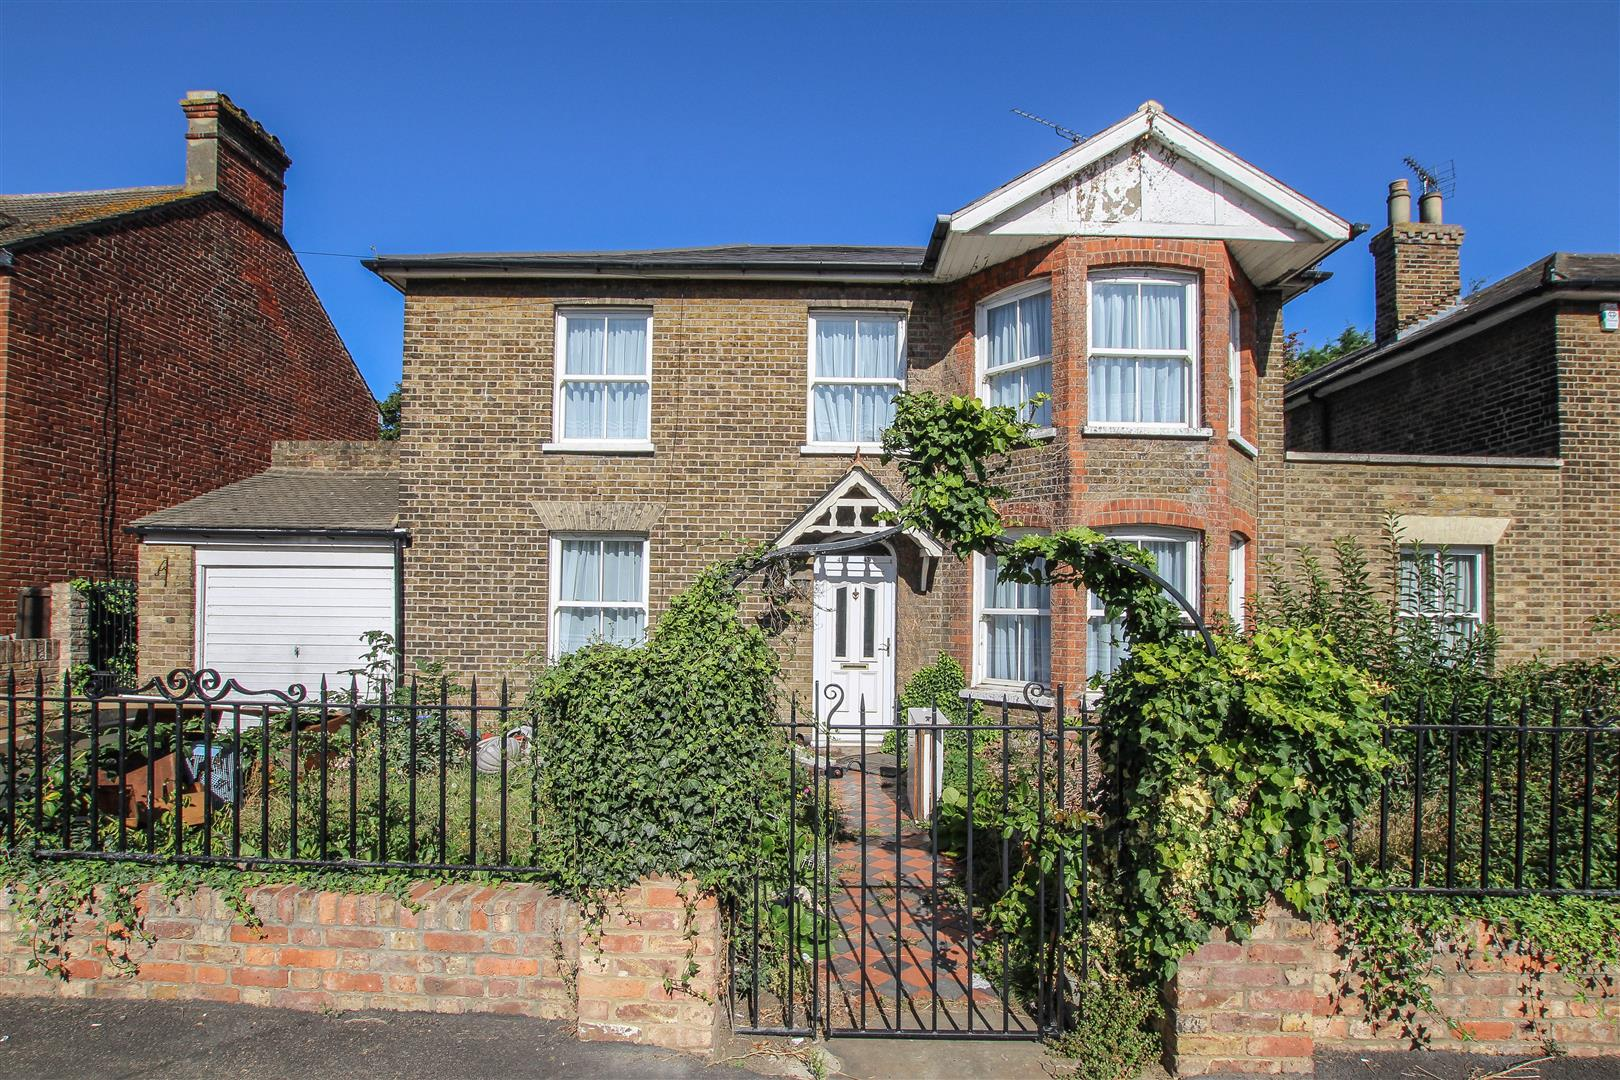 Crescent Road, Warley, Brentwood